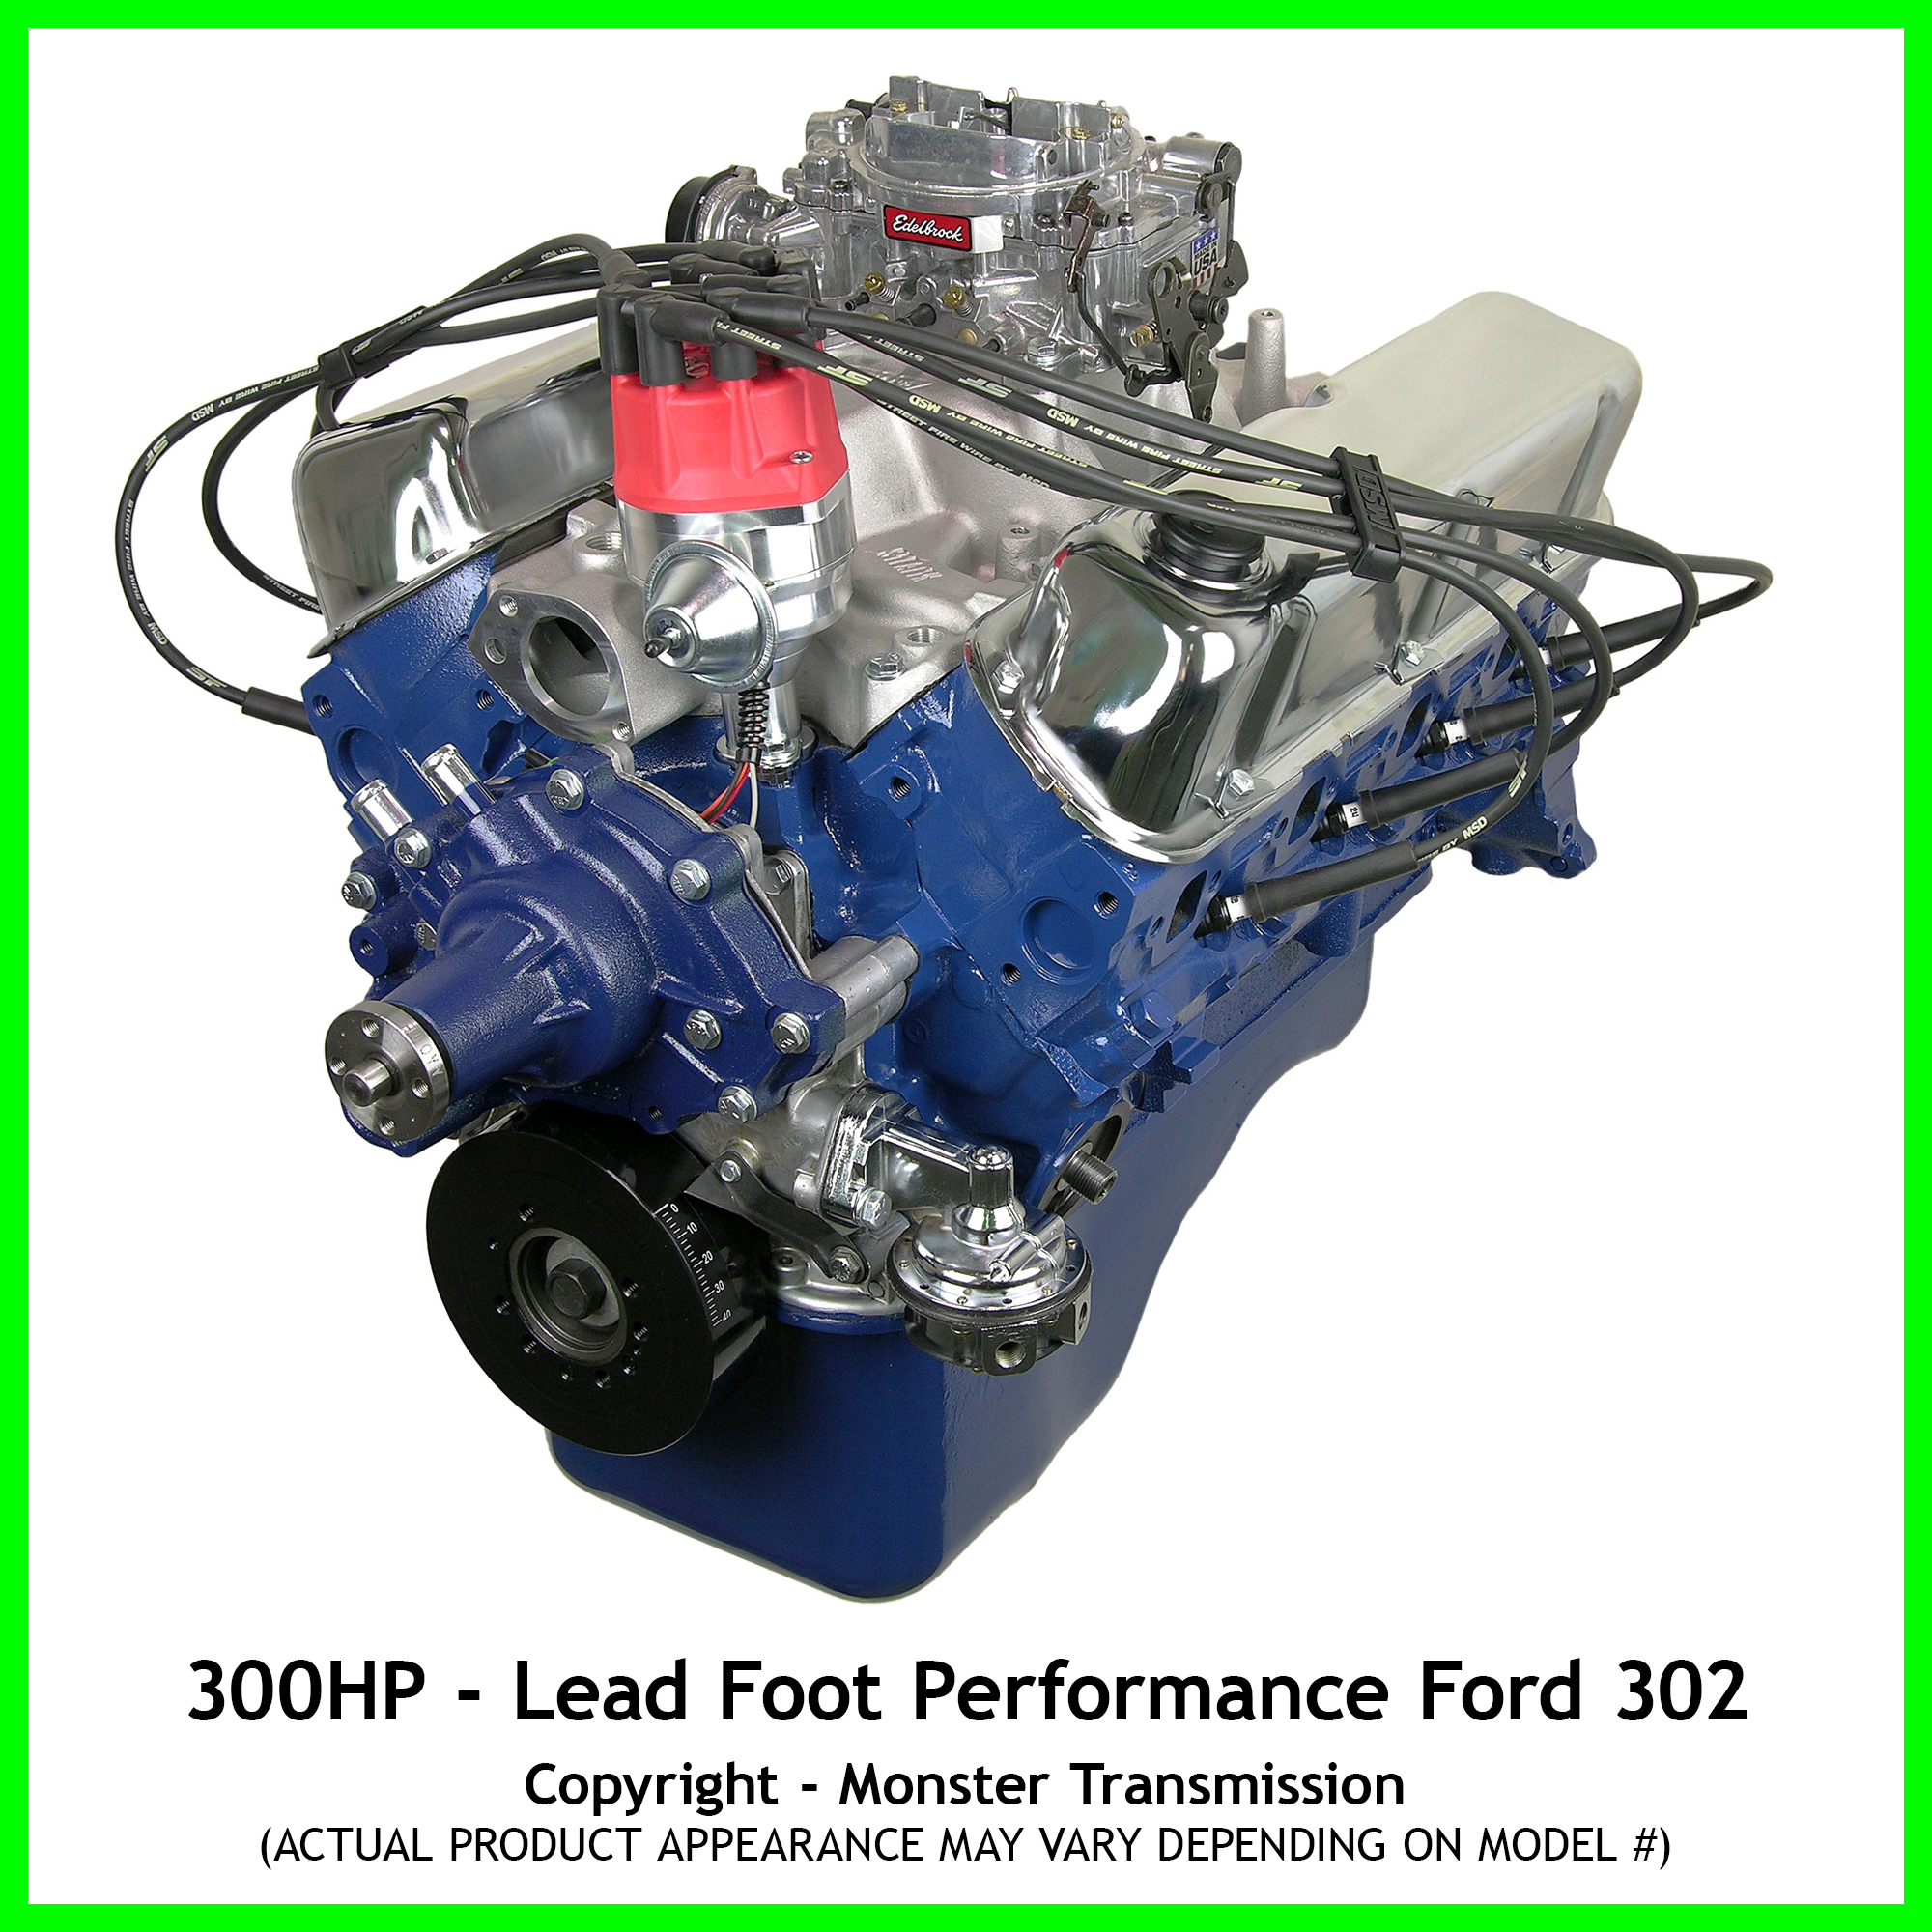 lead foot performance new modified ford 302 engine. Cars Review. Best American Auto & Cars Review